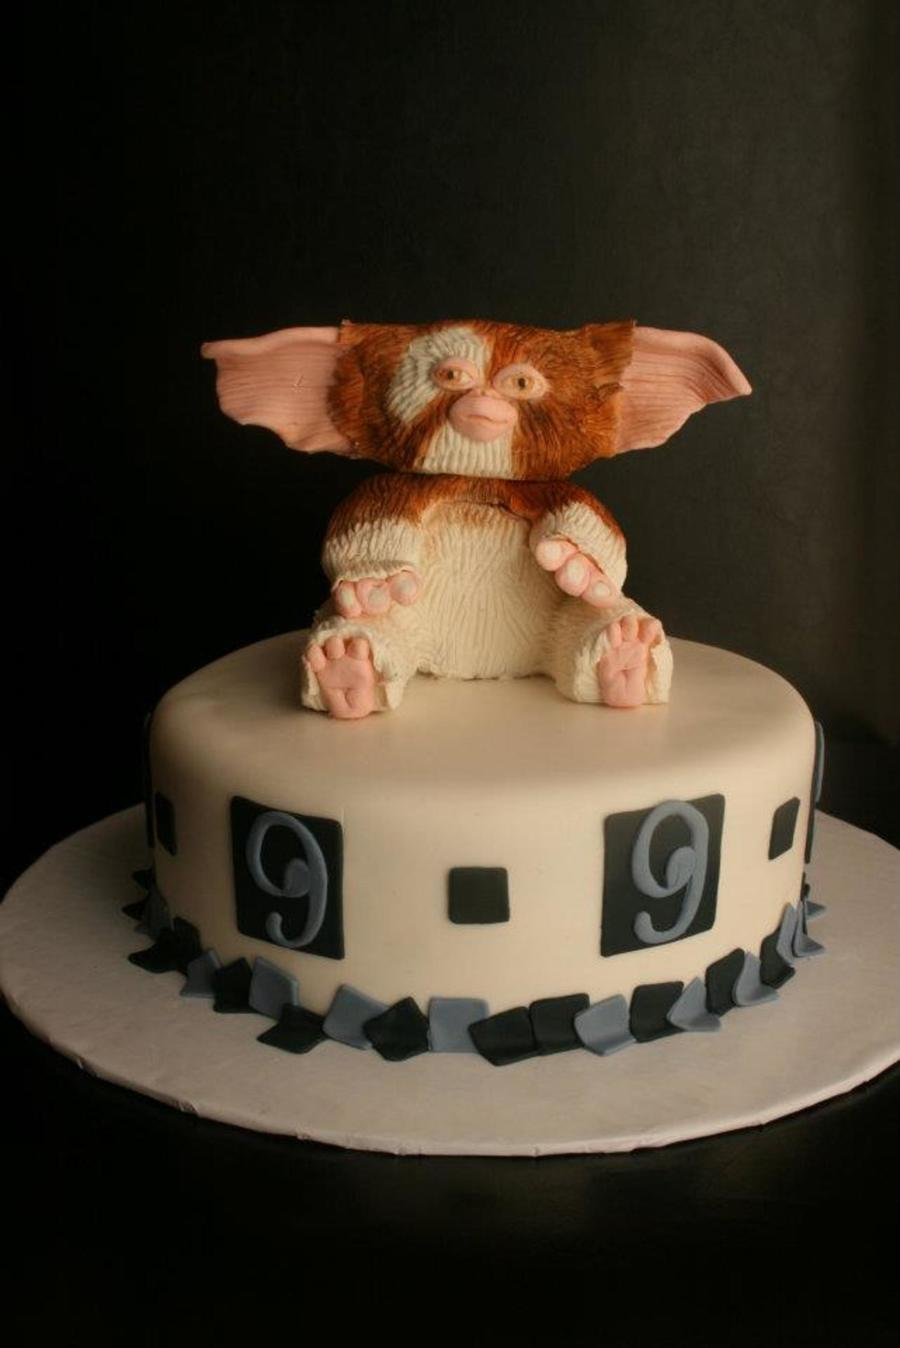 This Is One Of My All Time Favorite Cakes Gizmo From Gremlins An He Is Made All Out Of Modeling Chocolate Amp Was So Much Fun on Cake Central